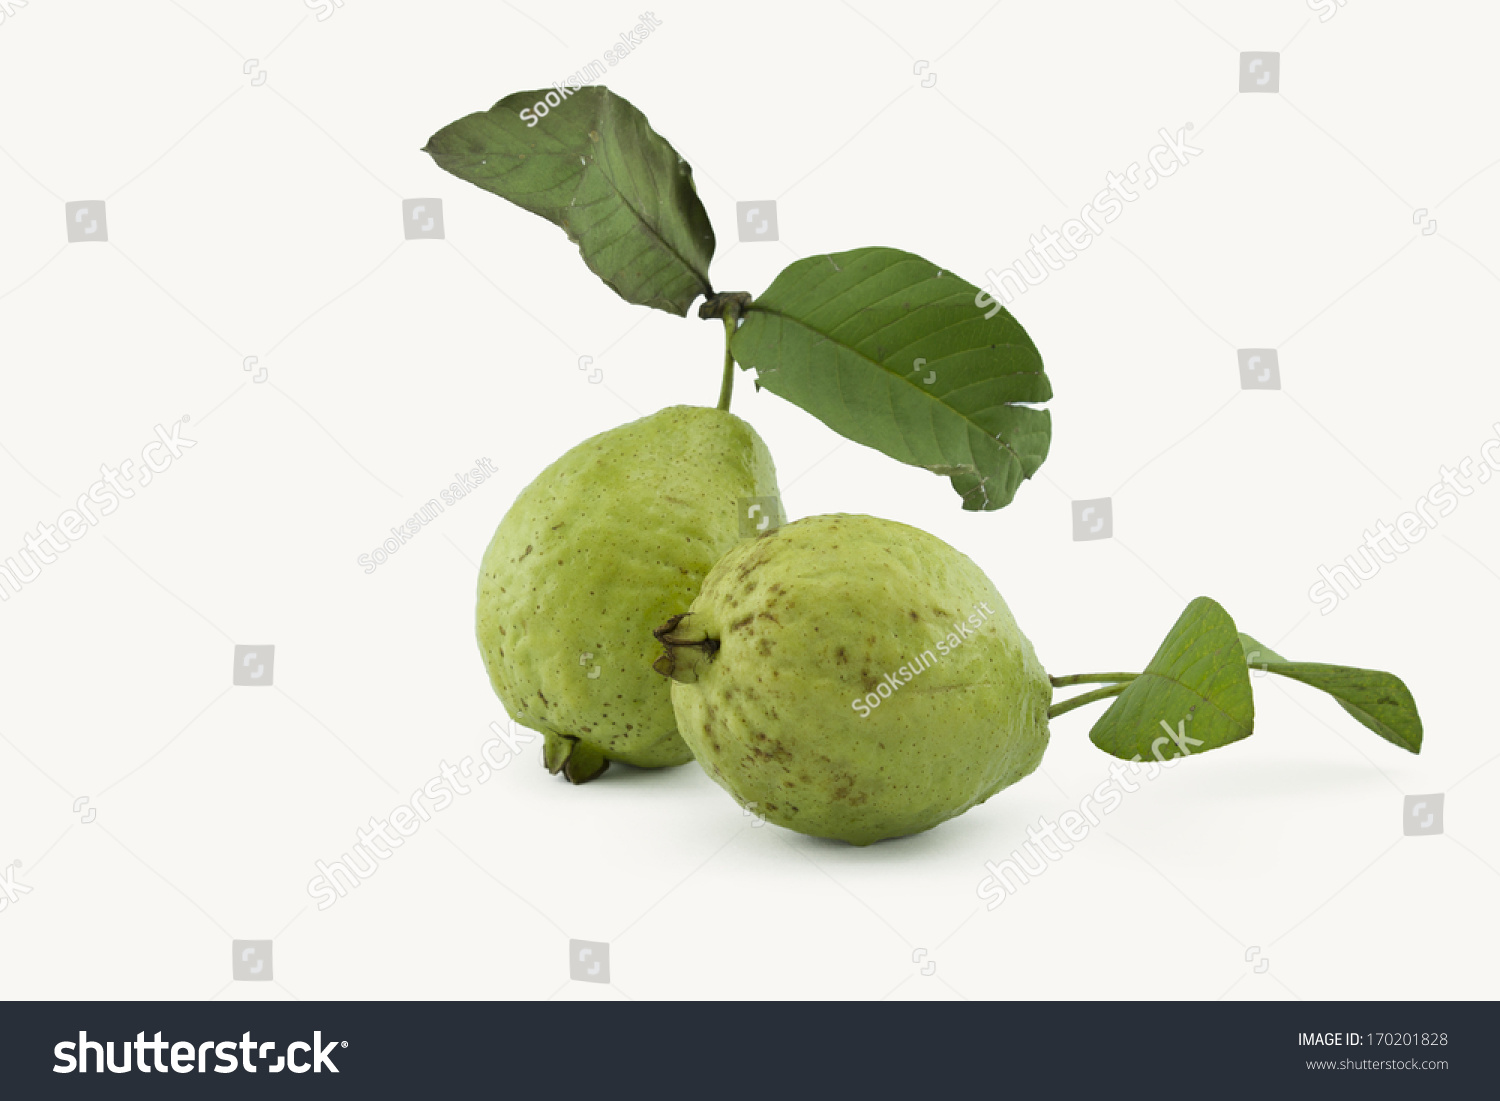 Guava Ripe Fruit Yellow Sweet With Small Hard Seeds Inside Eat A Banana